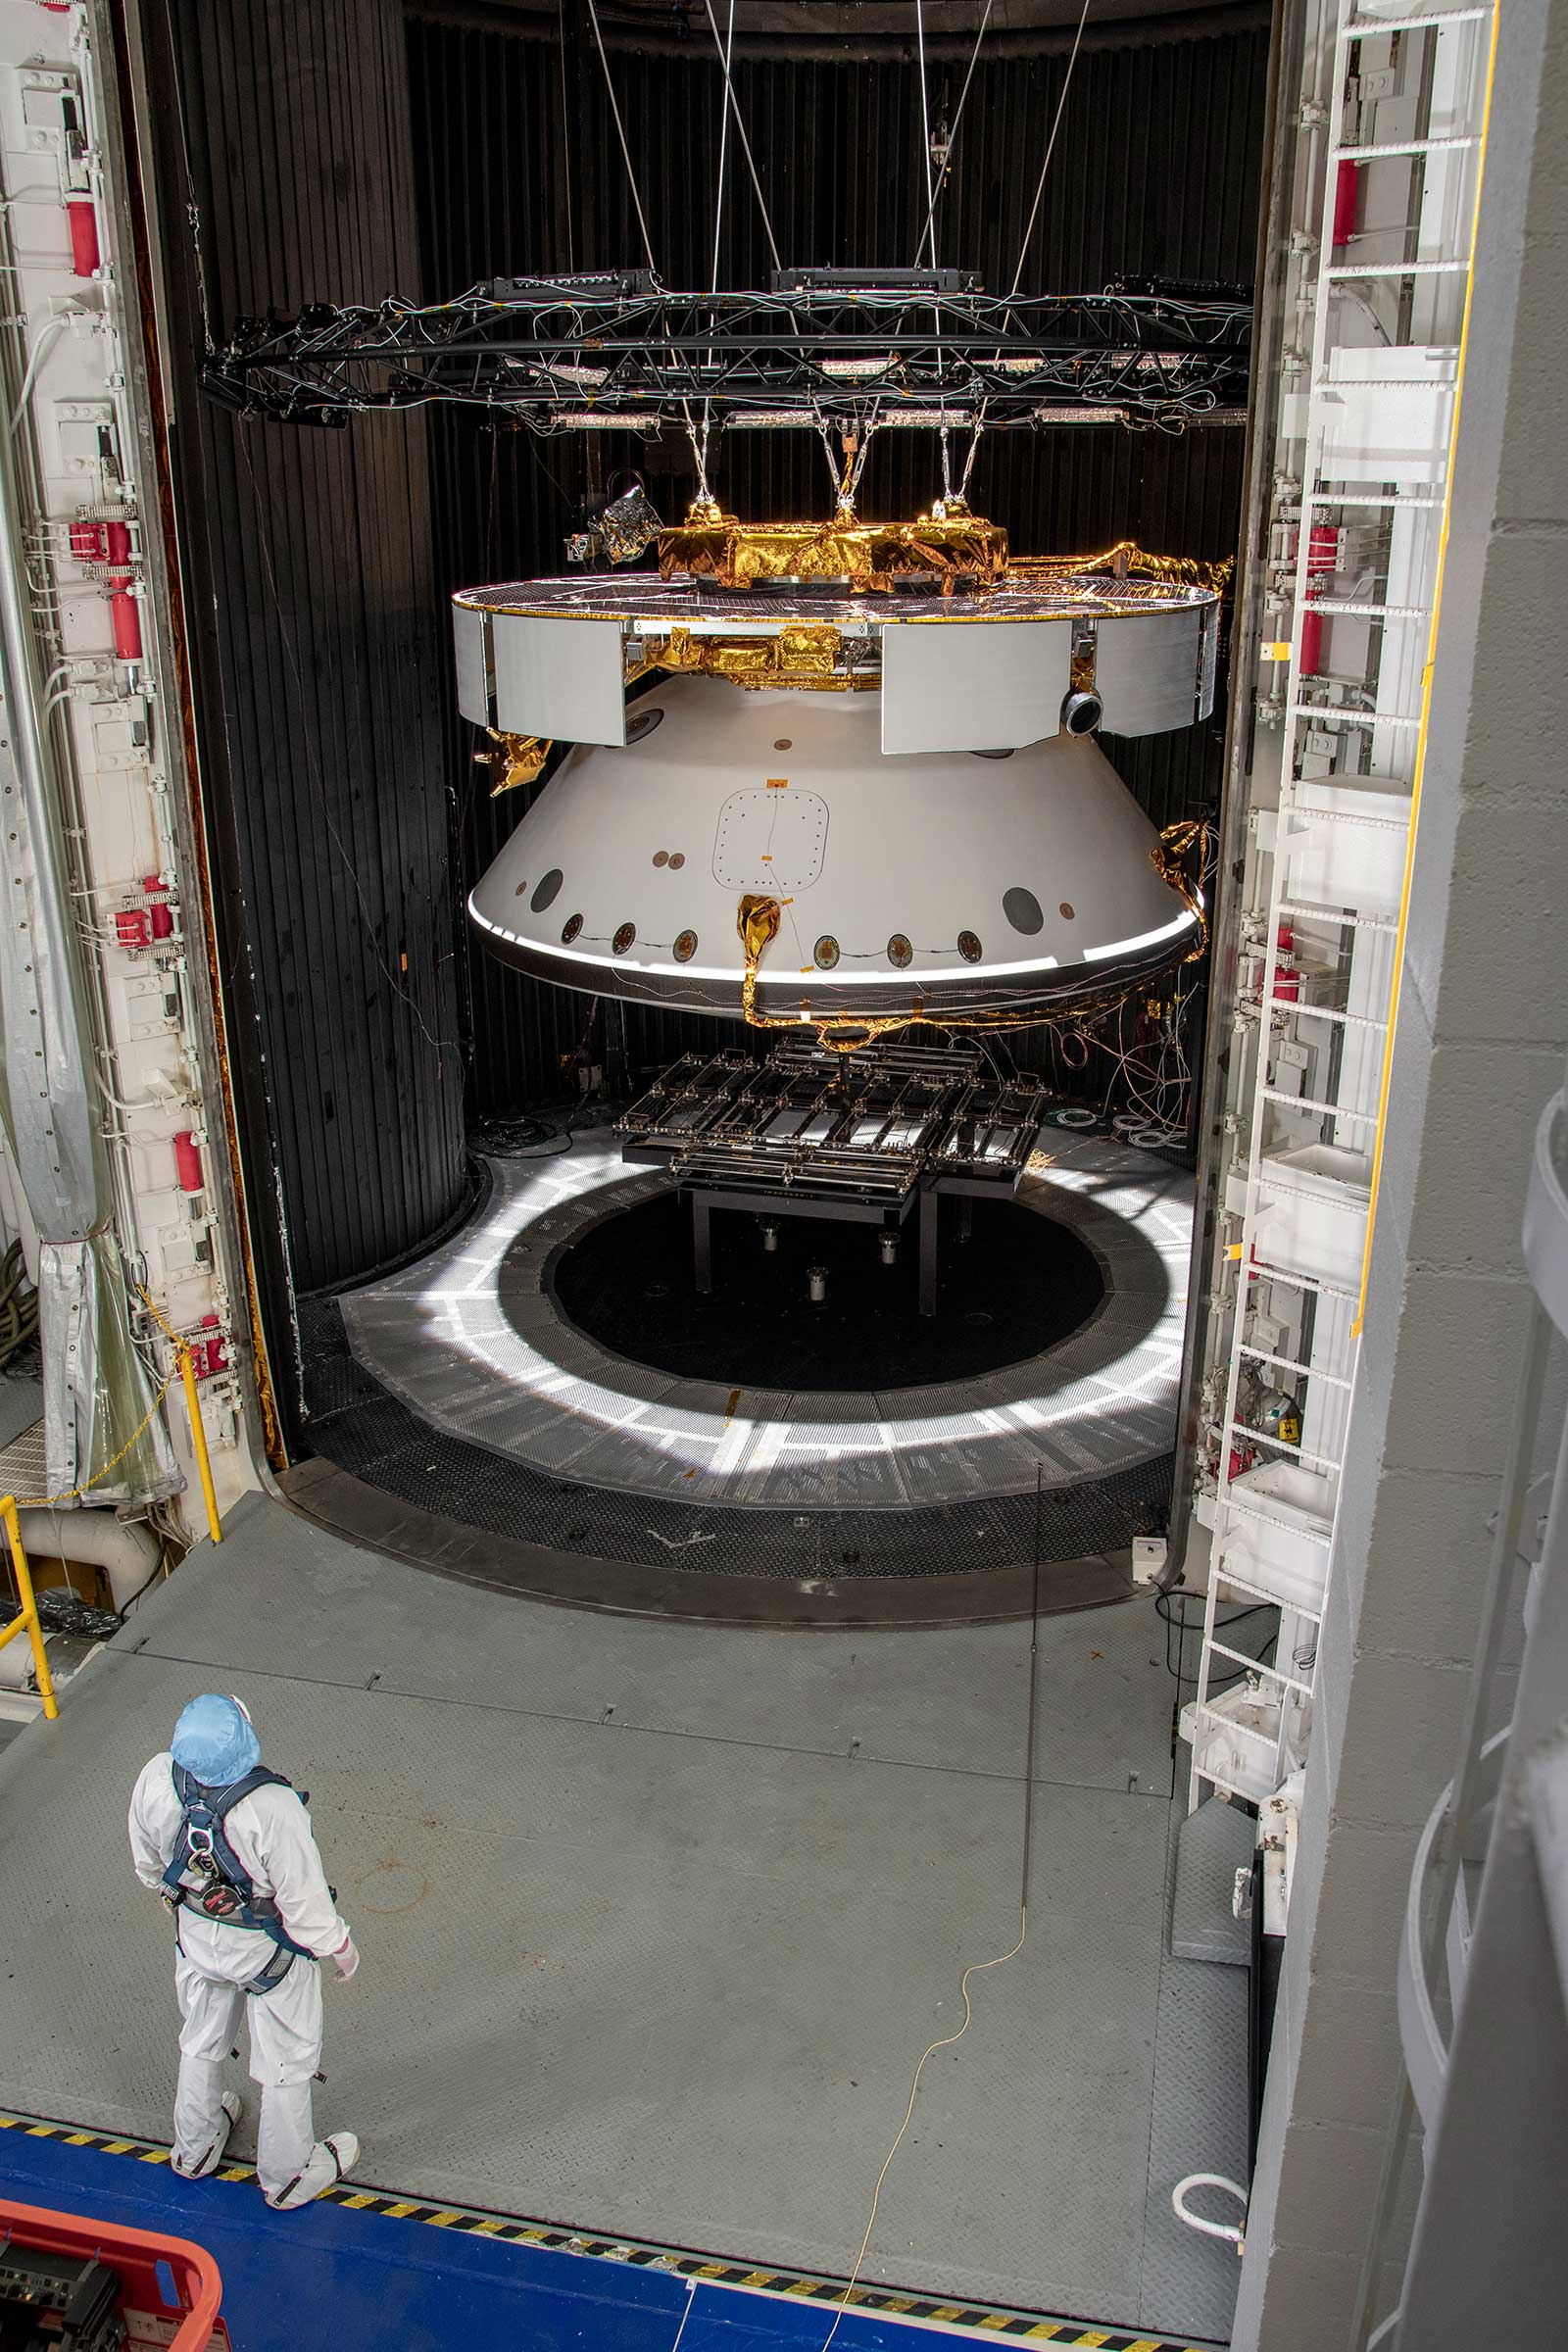 An engineer inspects the completed spacecraft that will carry NASA's next Mars rover to the Red Planet, prior to a test in the Space Simulator Facility at NASA's Jet Propulsion Laboratory in Pasadena, California.